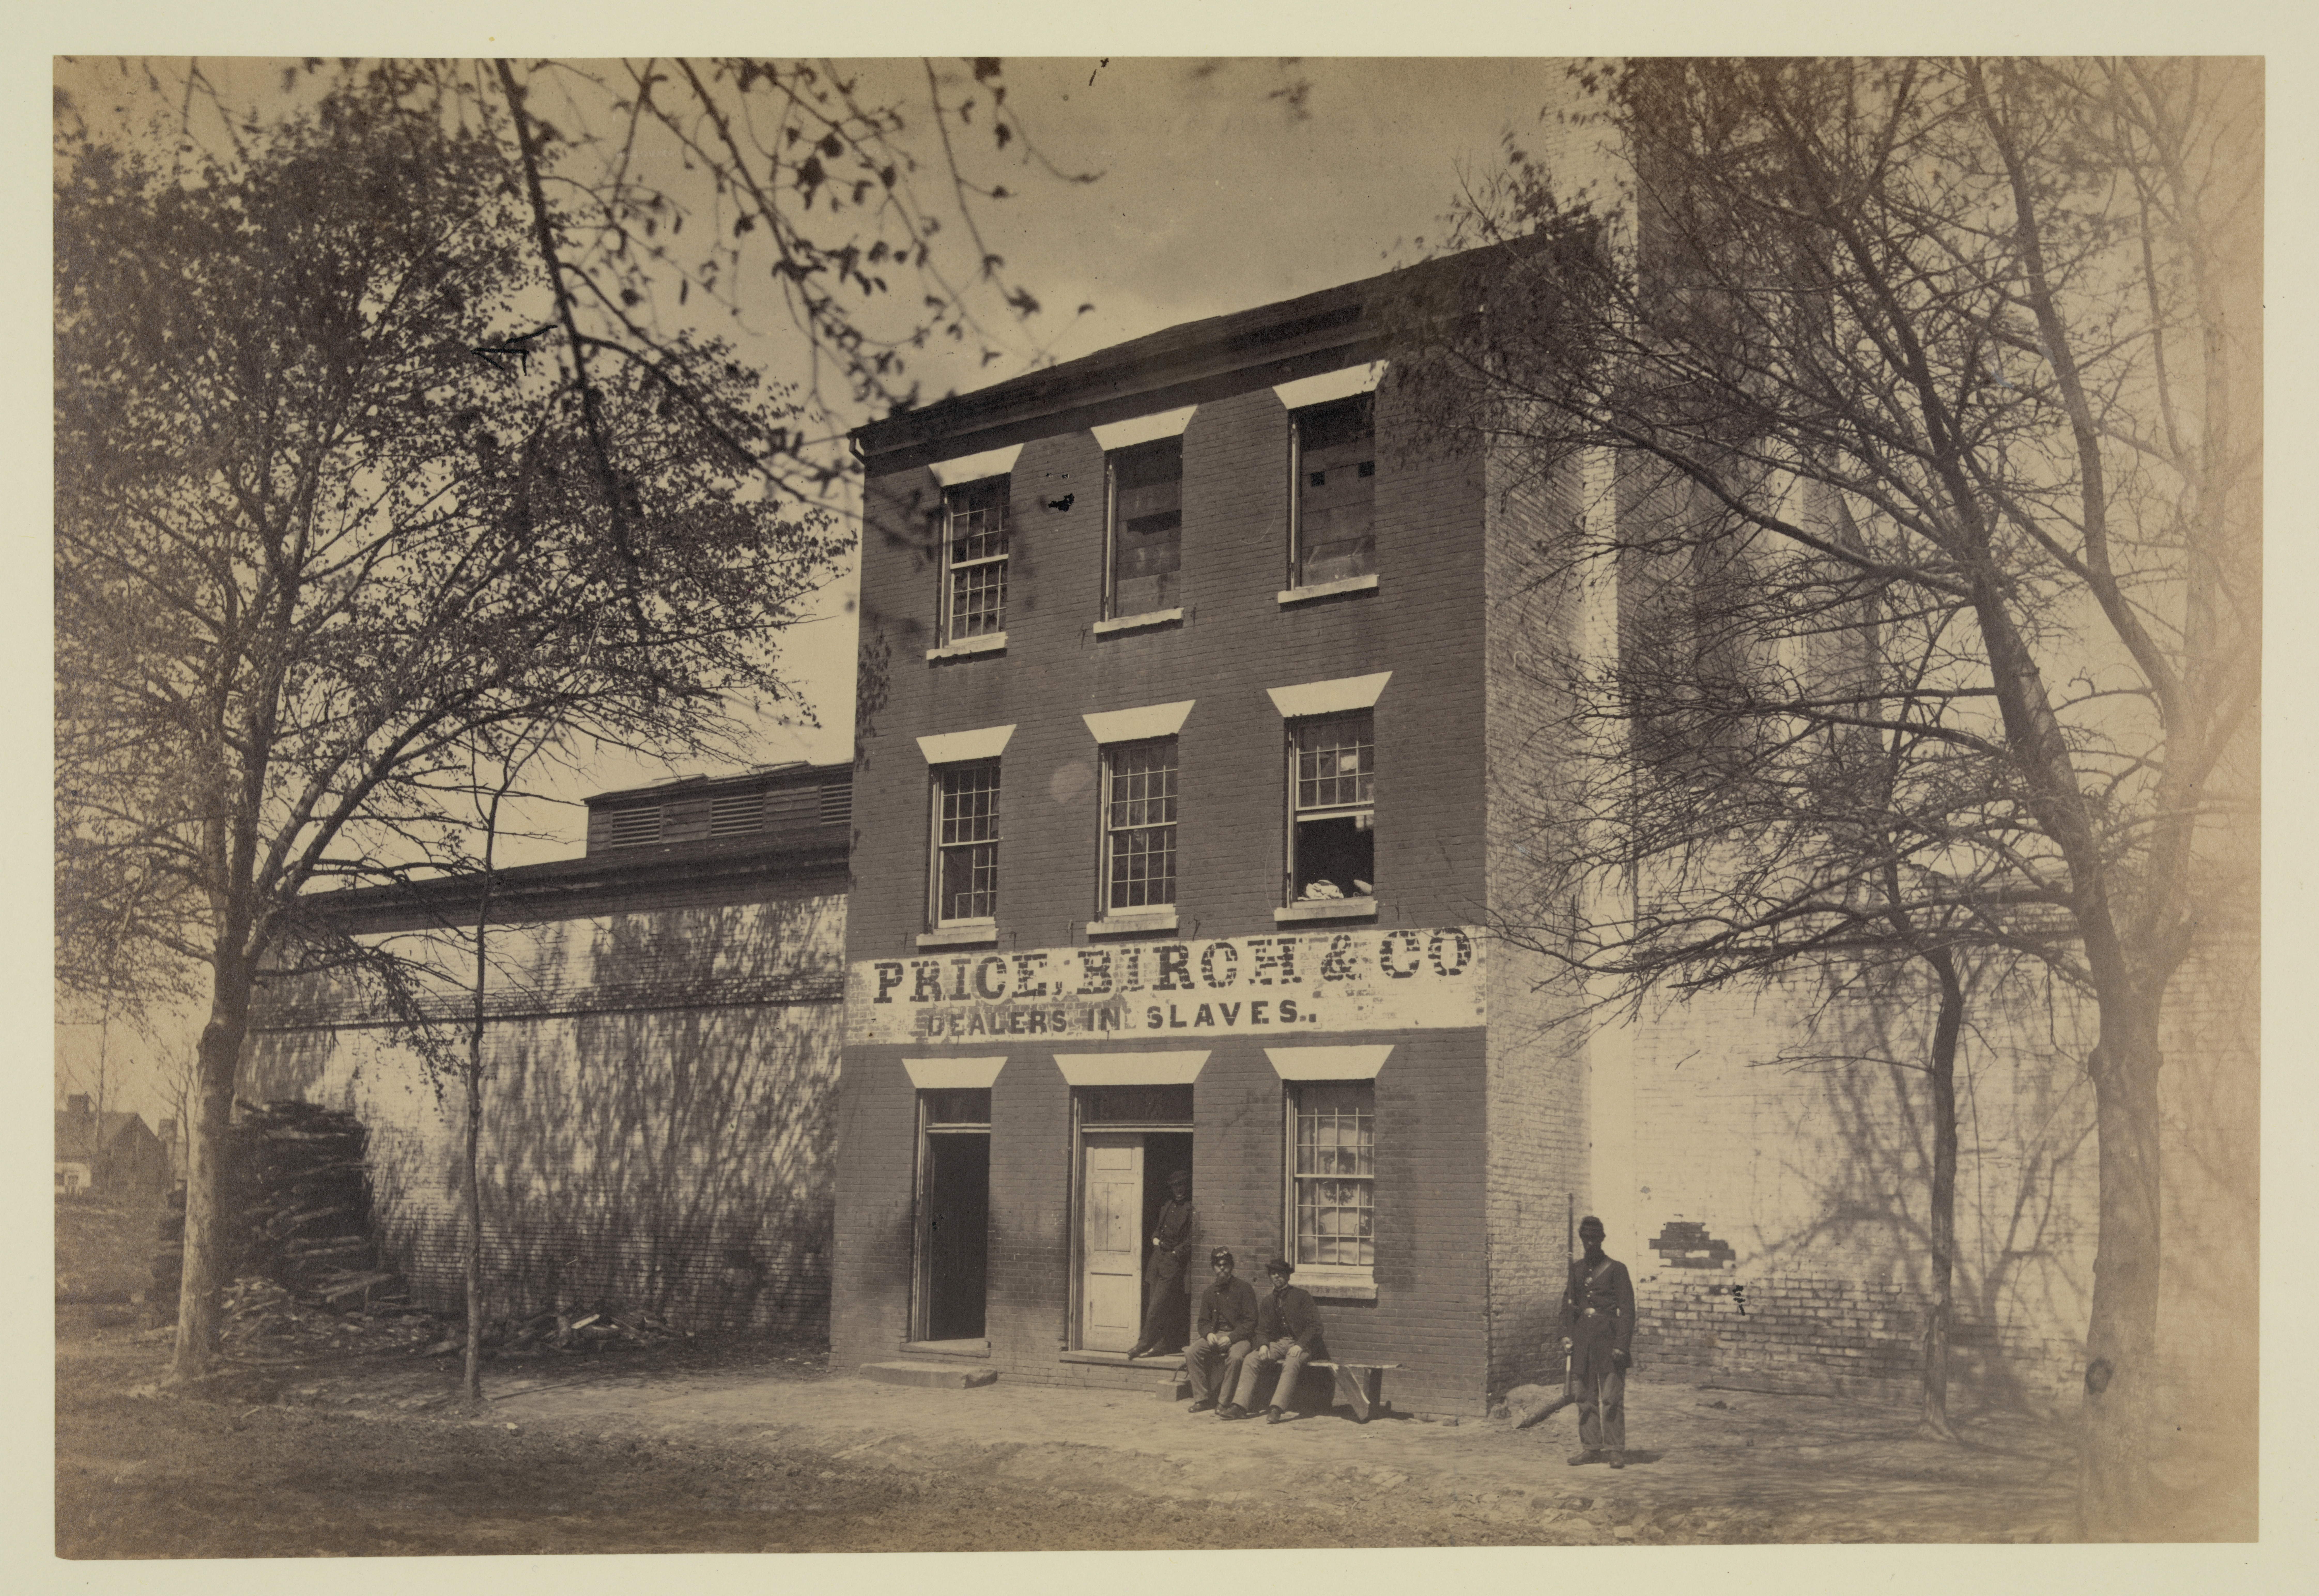 The Alexandria slave trading facility once occupied by Franklin and Armfield, as it appeared after its liberation by Union forces during the Civil War. Library of Congress Prints and Photographs Division